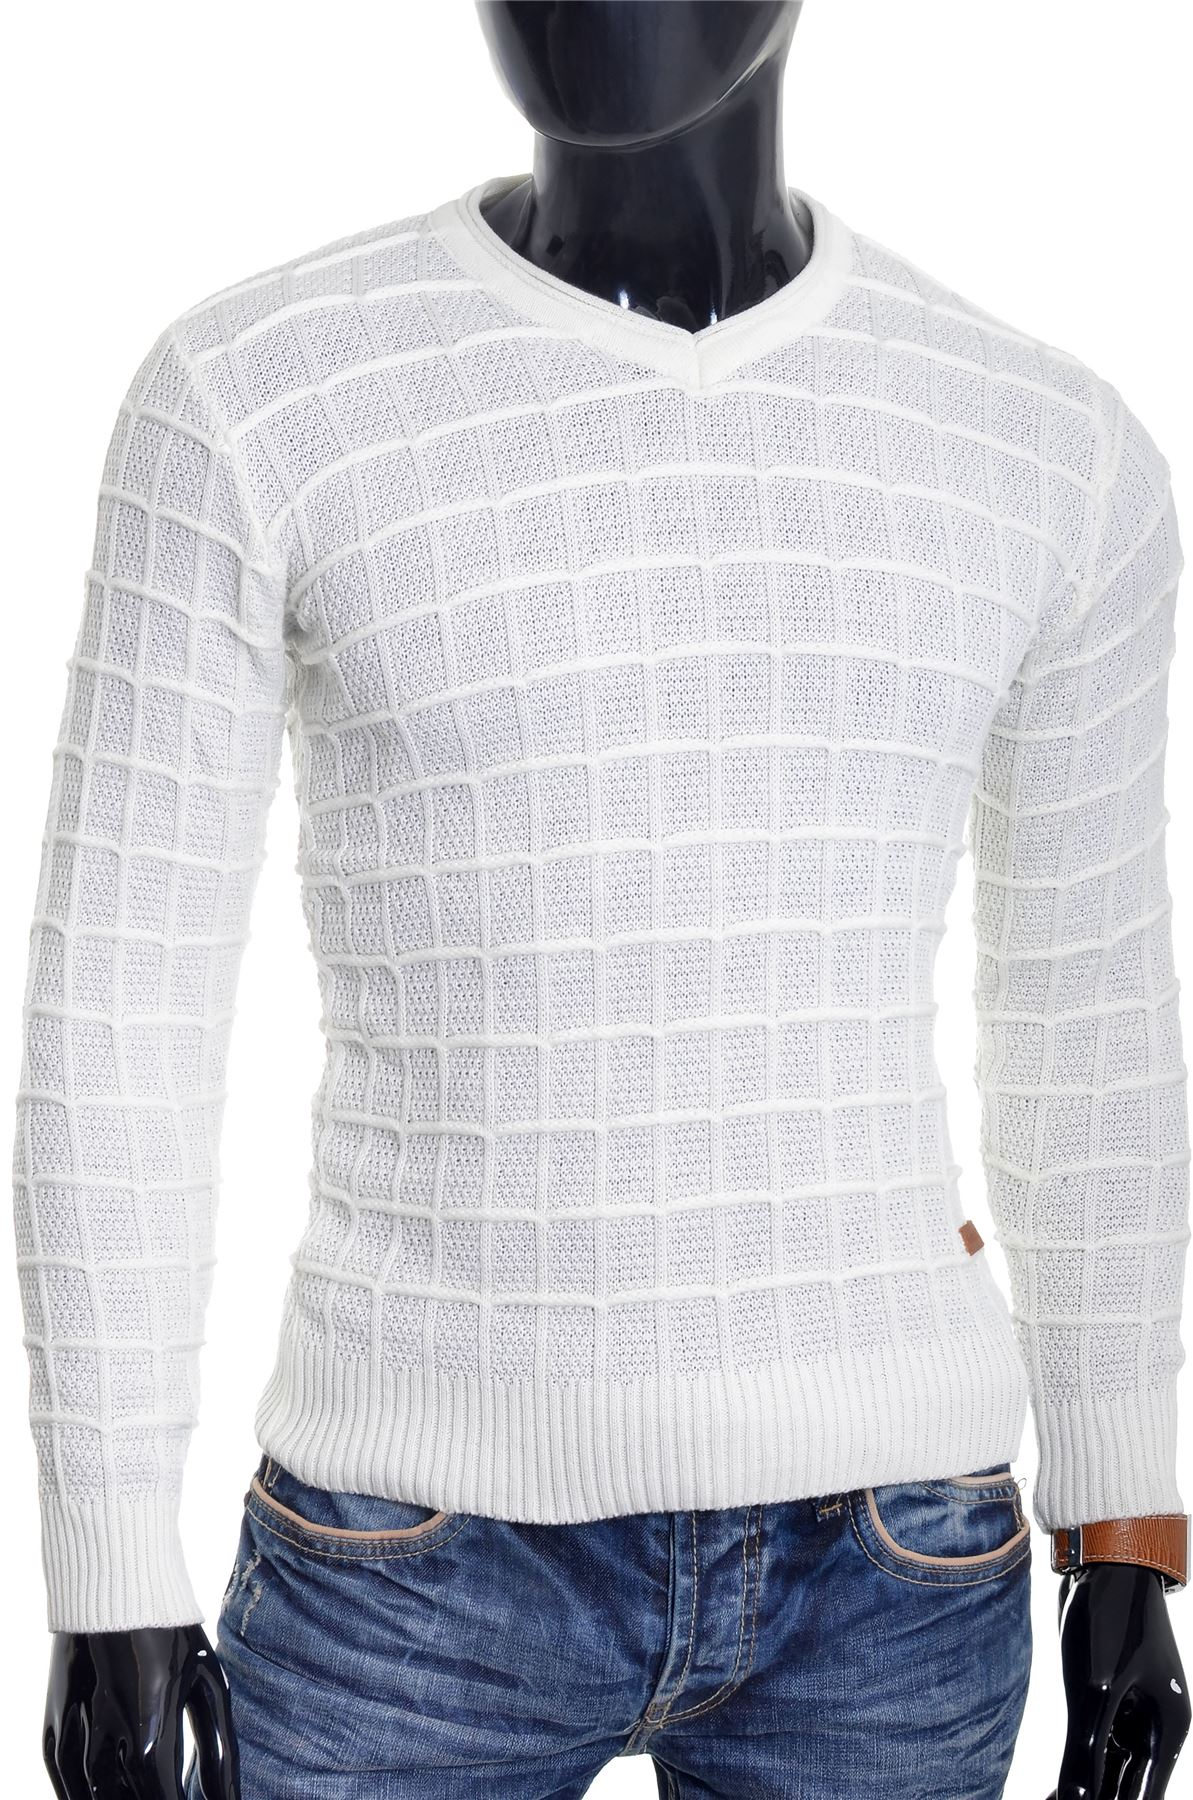 D-amp-R-Men-039-s-Wool-Jumper-Knit-Smart-Long-Sleeve-Sweater-Crew-Neck-Check-Top-Slim thumbnail 13